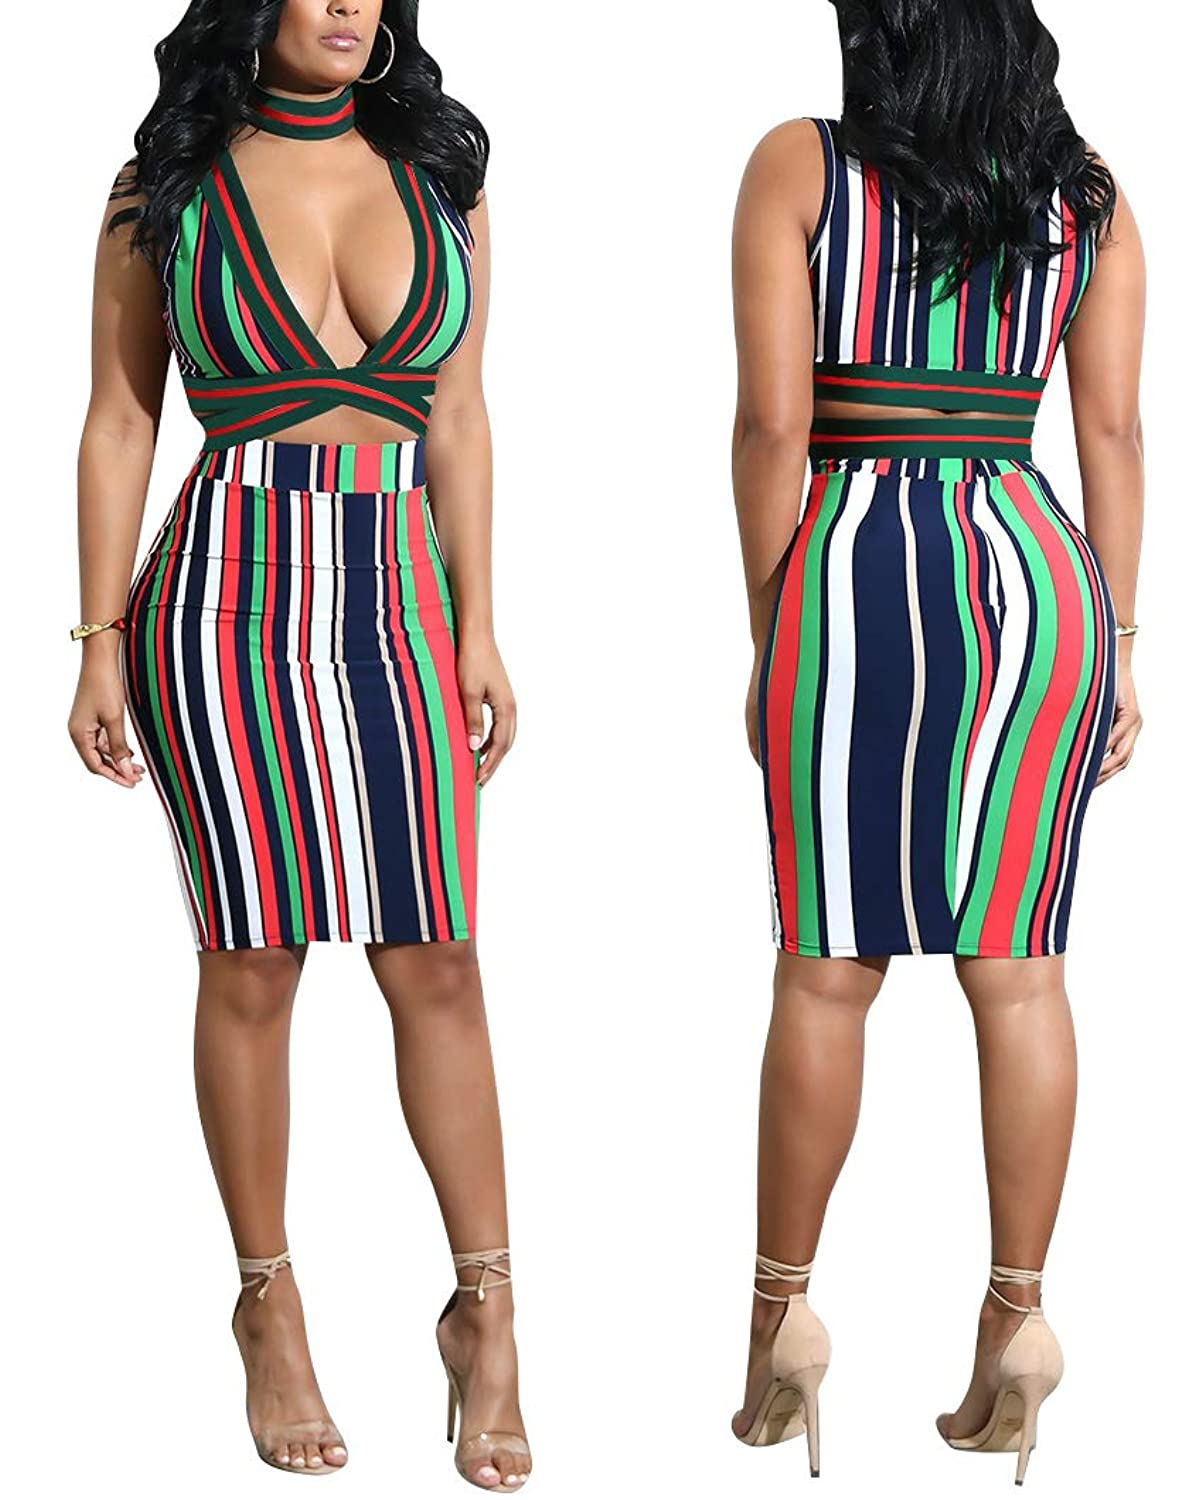 94da4935fb3d Criss cross bandage,cute mini dress,stripe,sexy crop bra and midi skirt,slim  fit abvoe knee dress,crop top and pencil skirt two piece sets